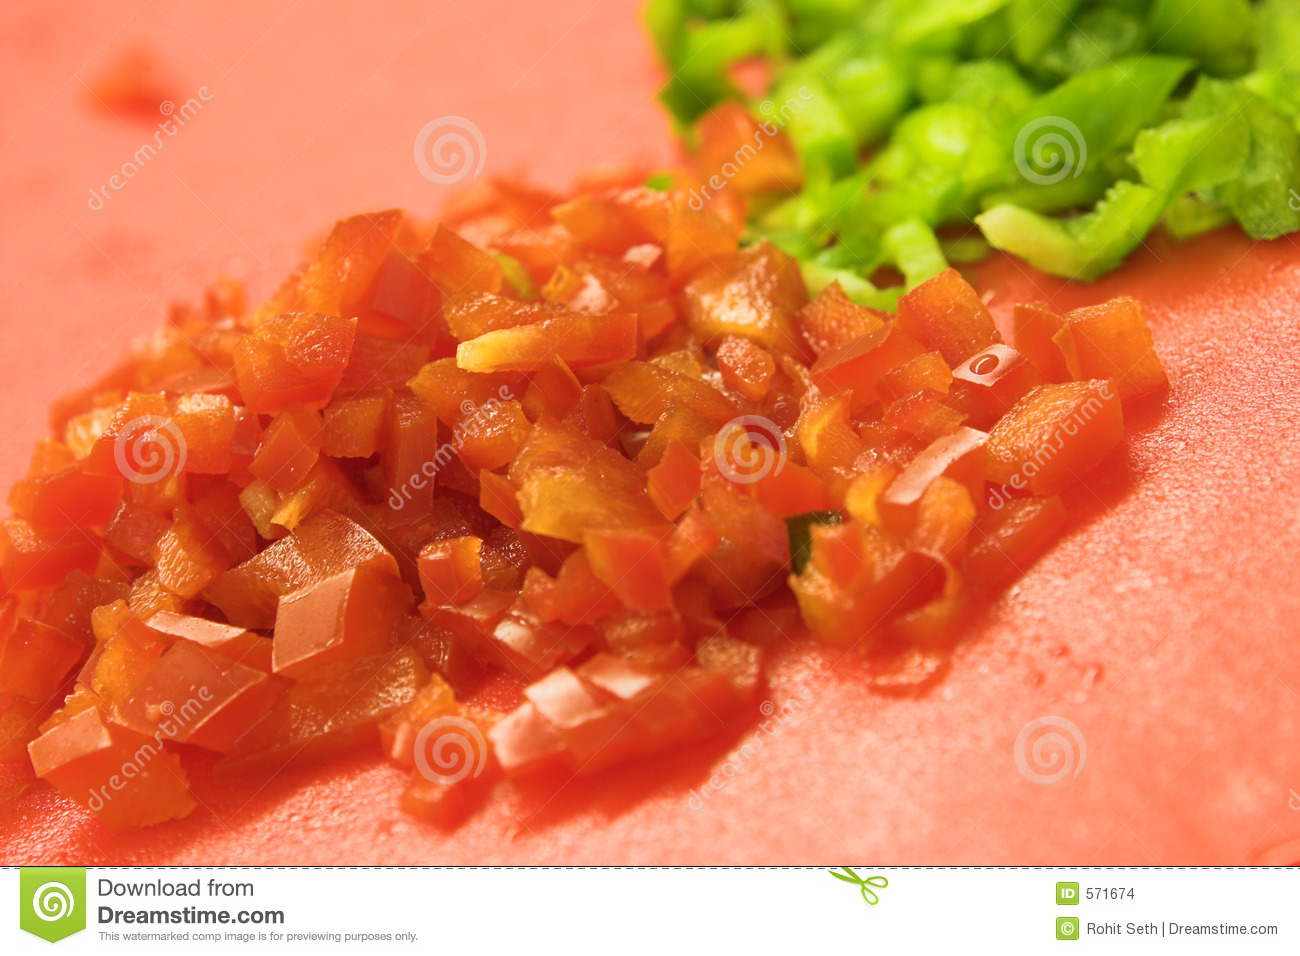 how to cook chopped tomatoes